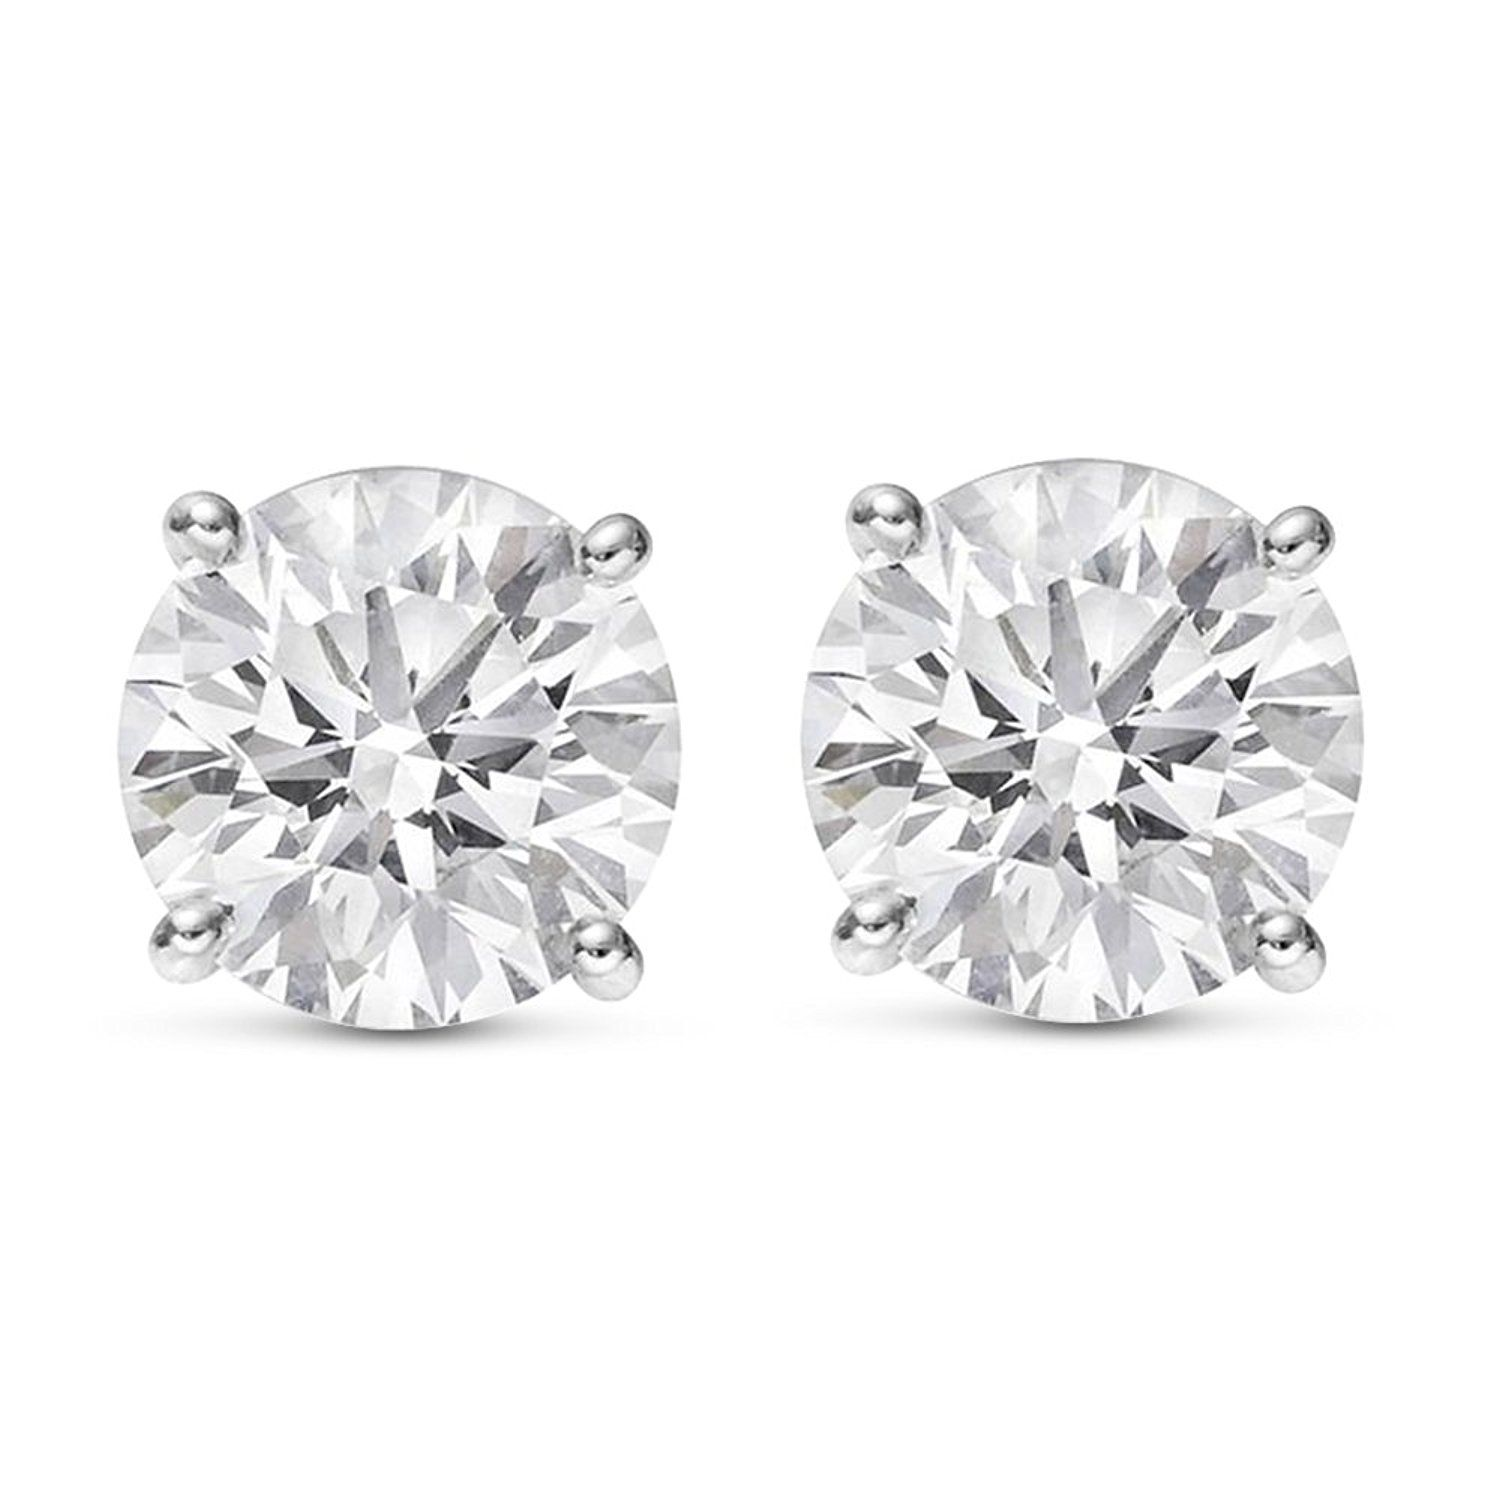 1/4 Carat Solitaire Diamond Stud Earrings Round Brilliant